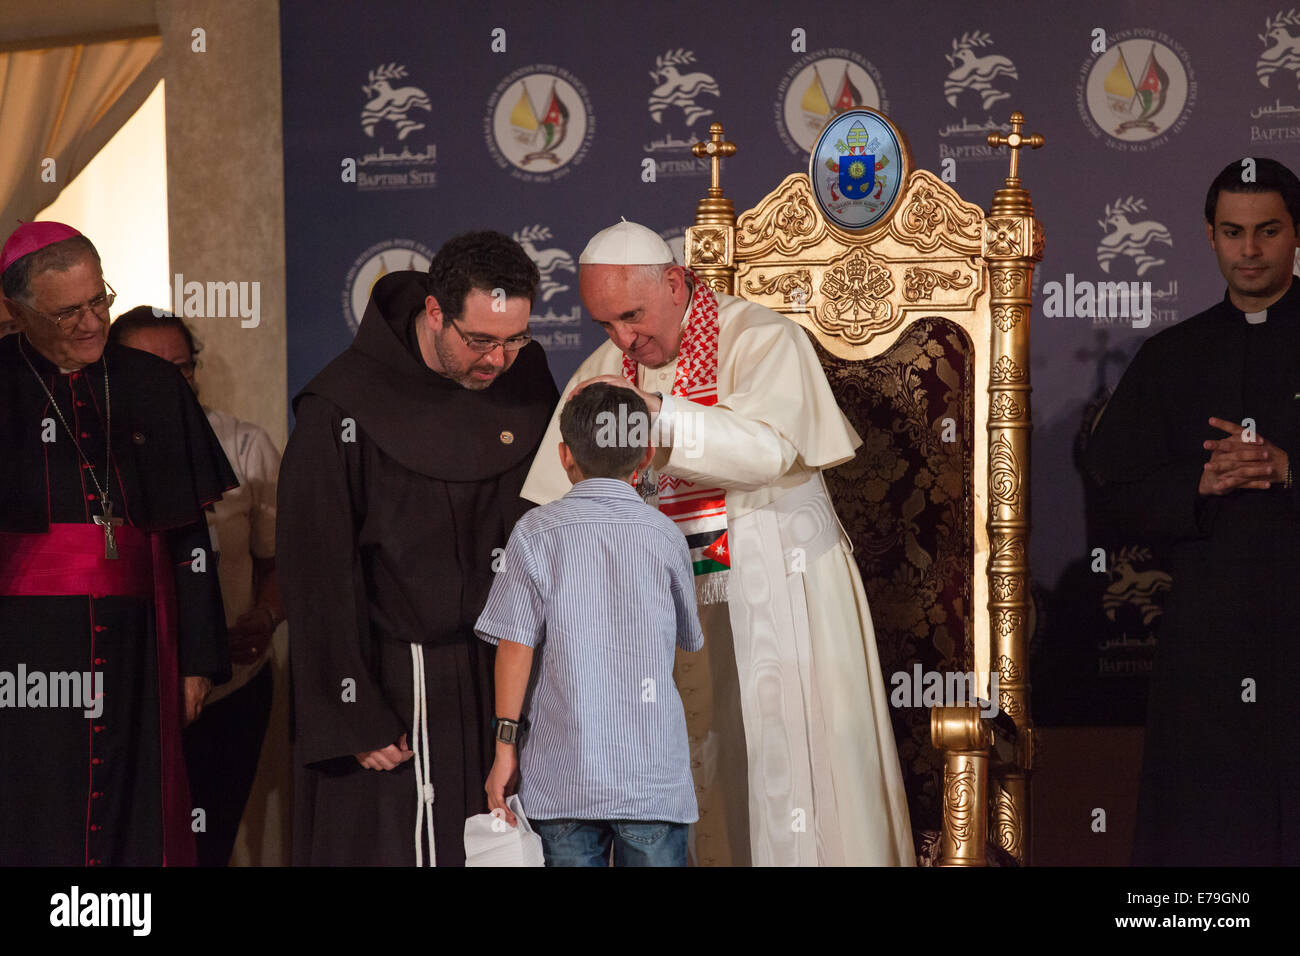 5be8bb453bbb Pope Francis blesses a Syrian refugee during his visit to the Catholic  church at the Baptism